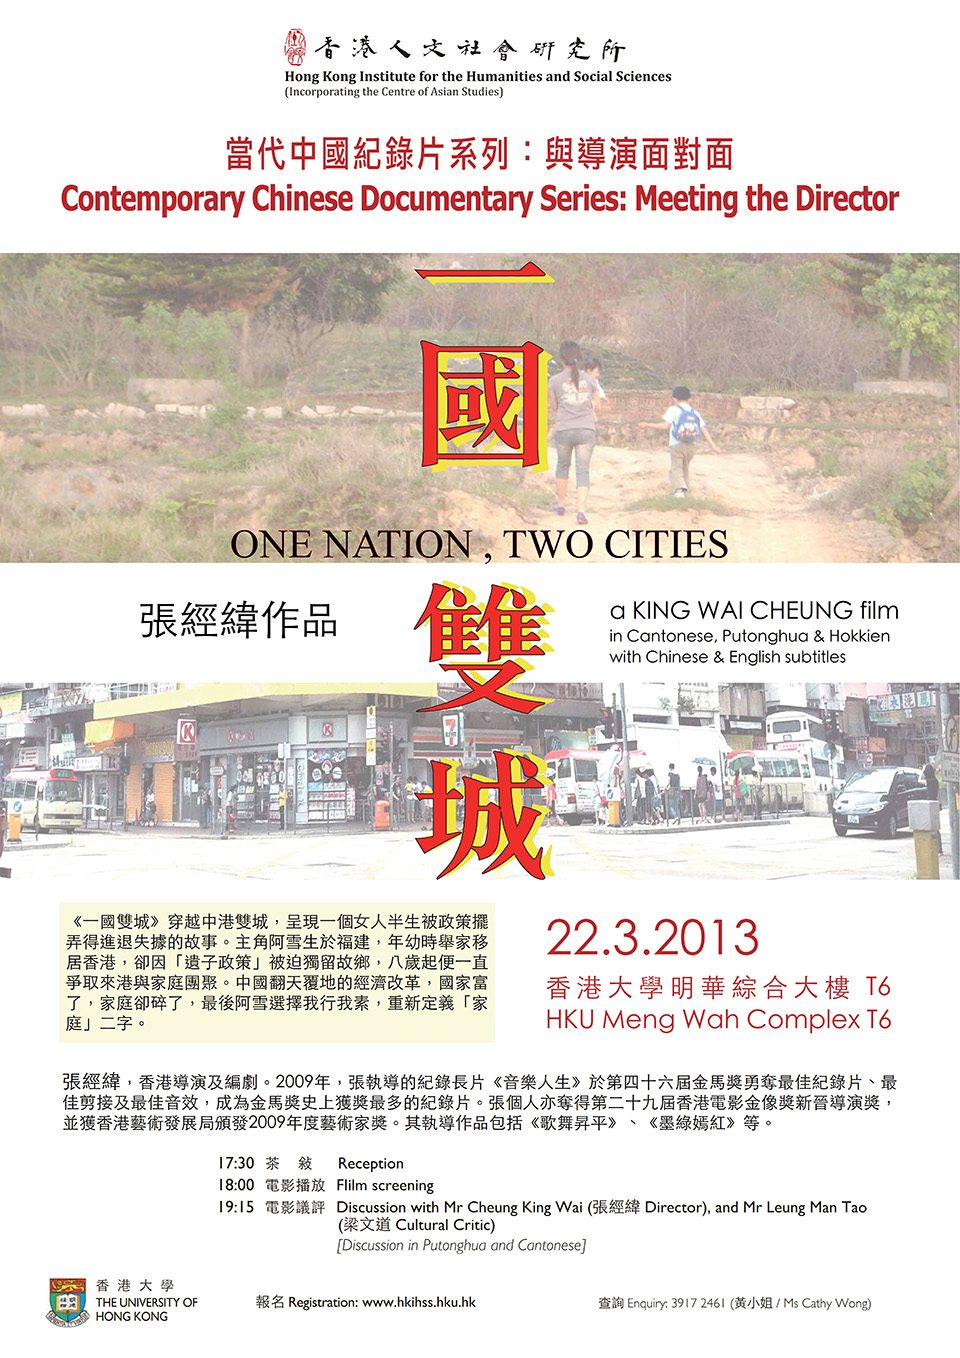 One Nation, Two Cities 一國雙城 (March 22, 2013)